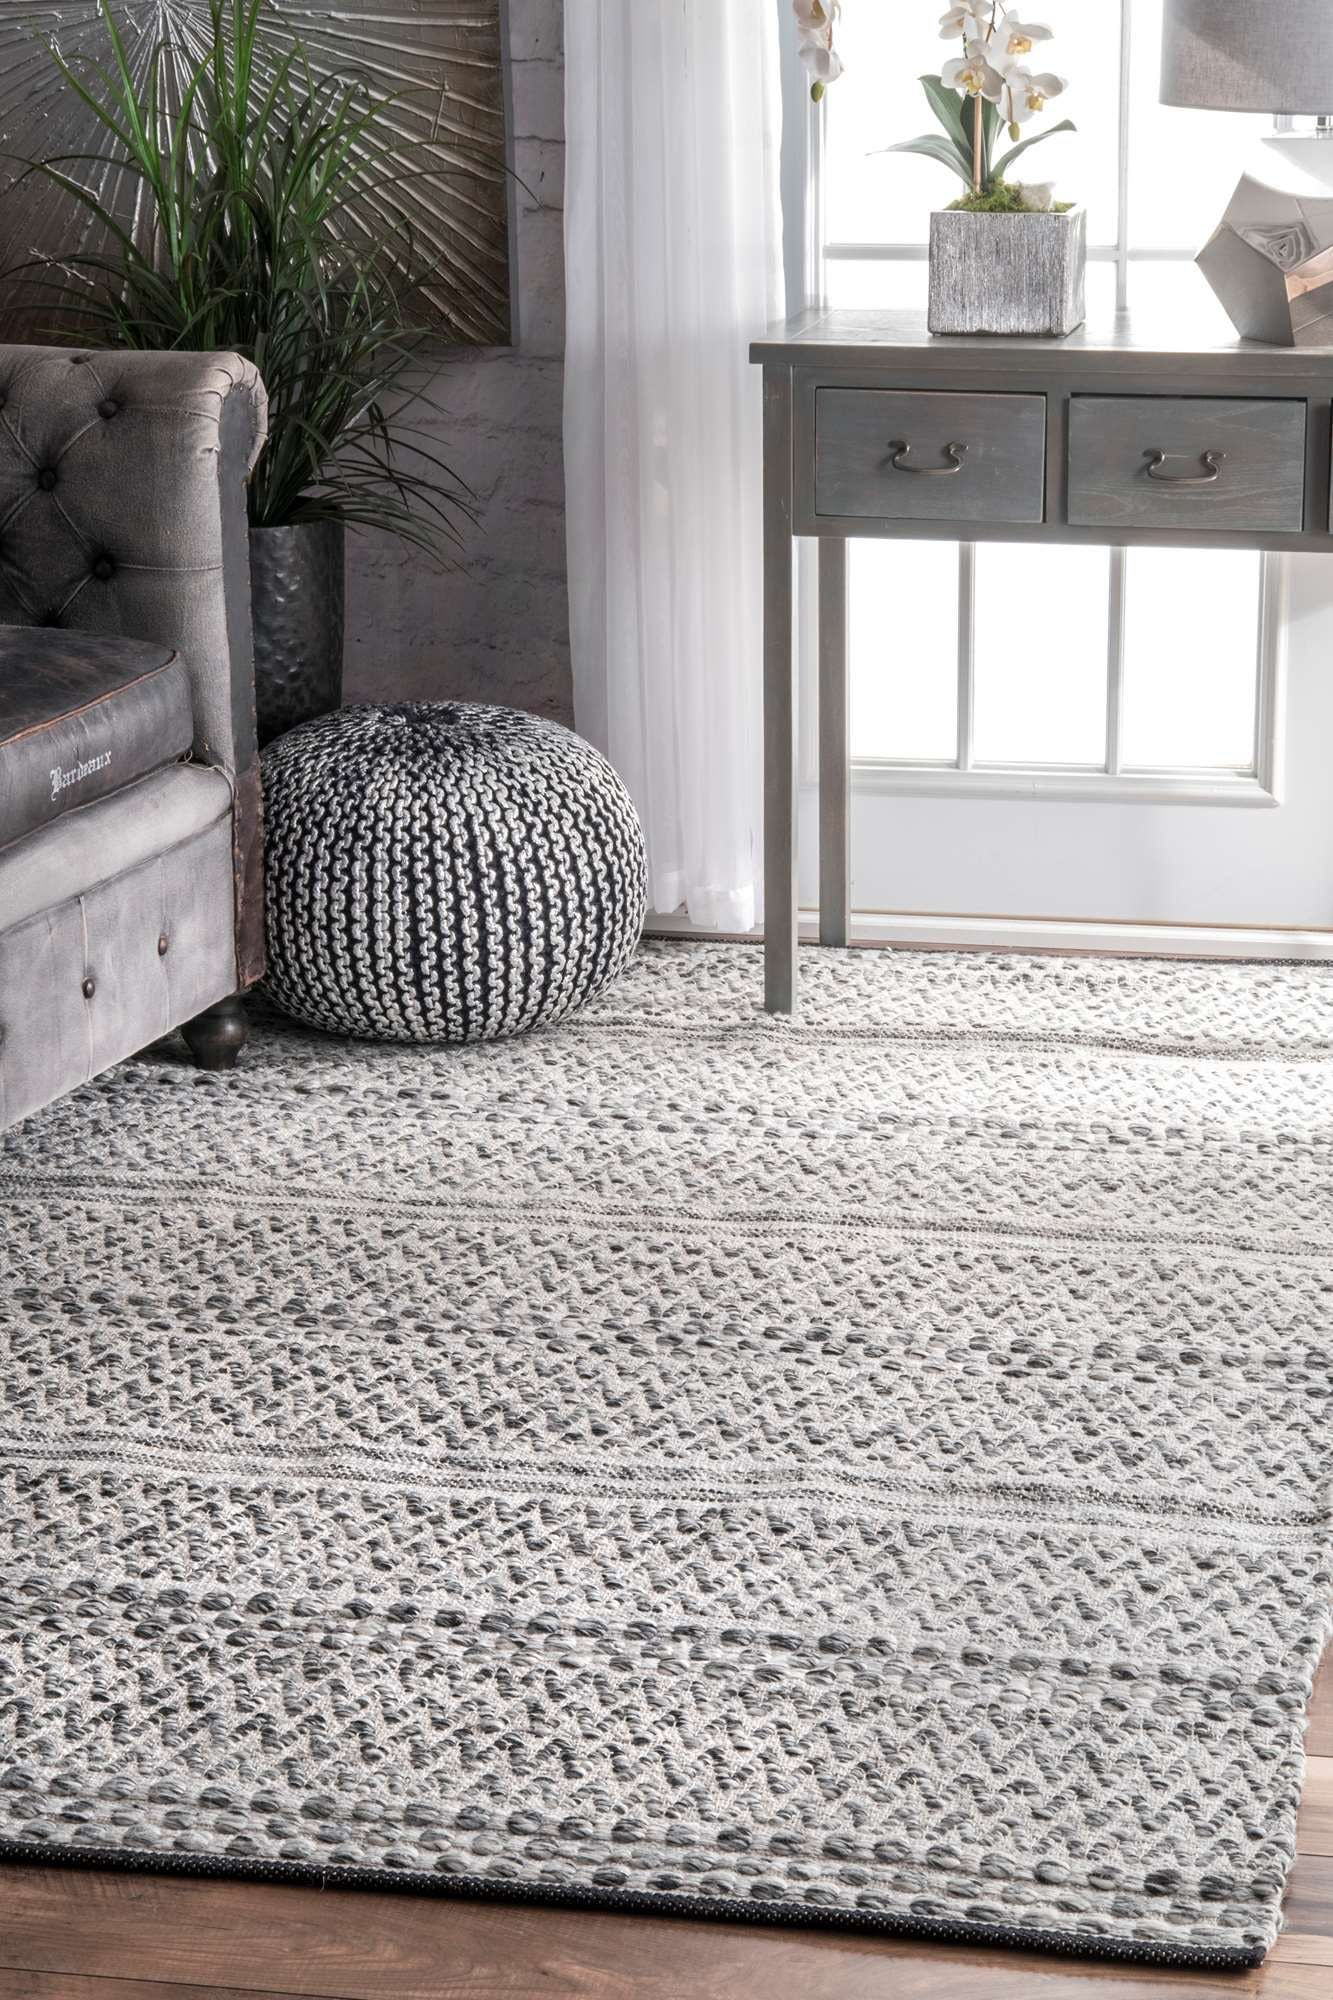 10 Actually Stylish Indoor Outdoor Rugs We Re Loving Right Now Rugs In Living Room Area Room Rugs Room Rugs